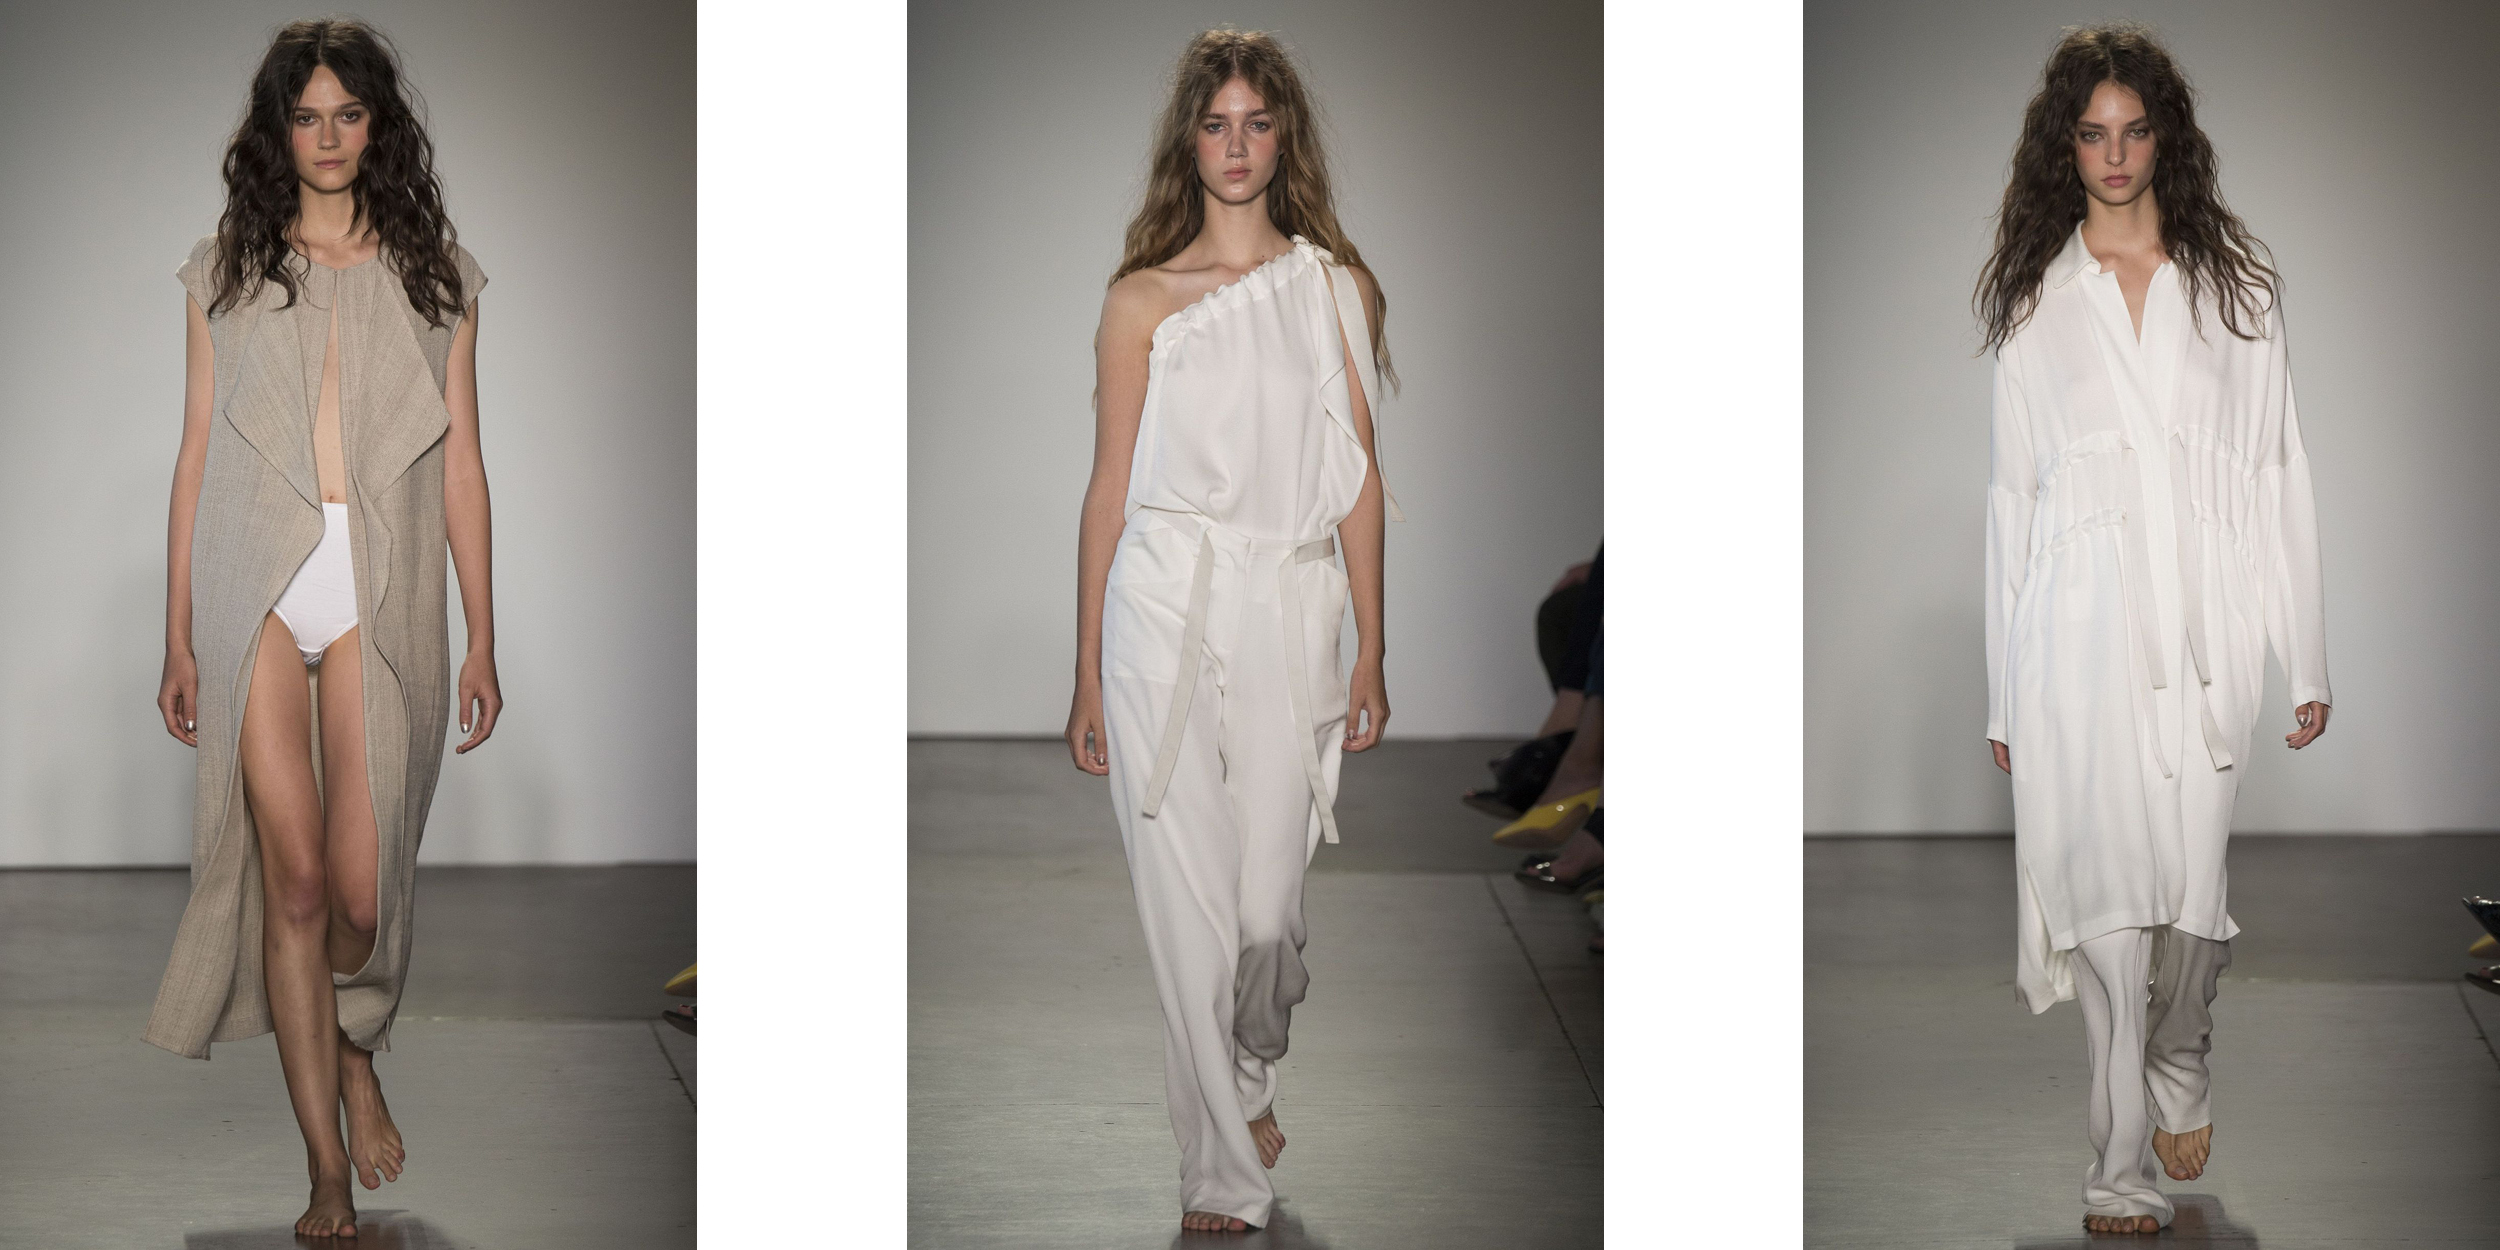 NYFW SS17 CATWALK LOOK FASHION SHOW REVIEW